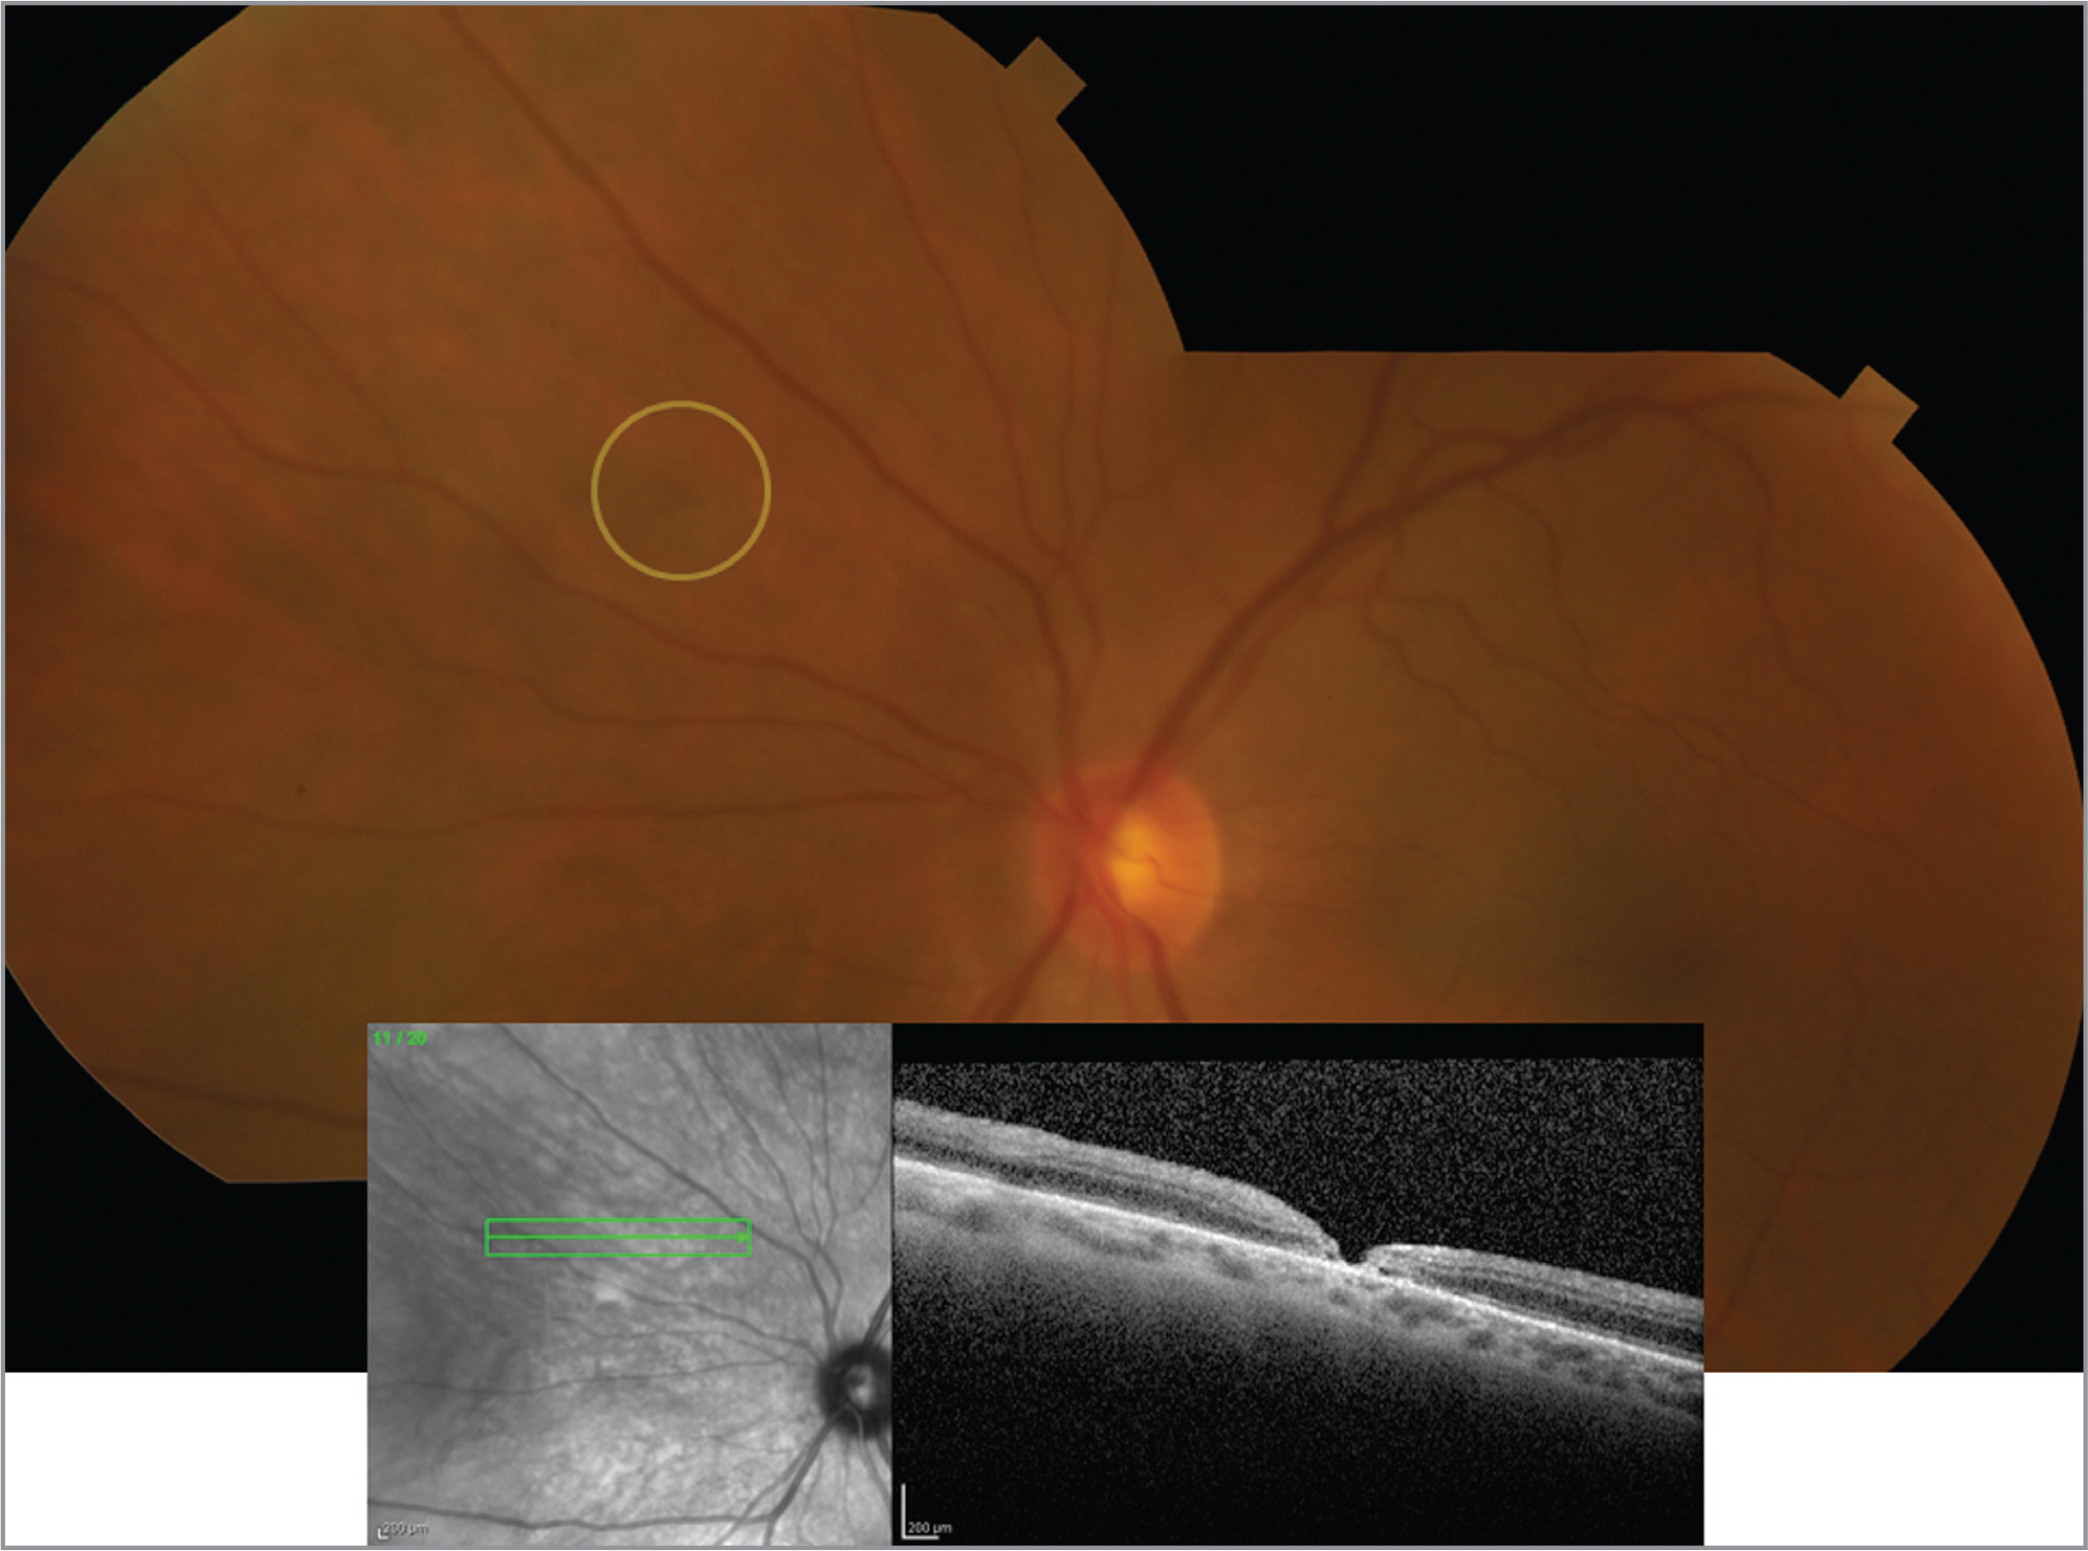 Color images of non-lasered retinotomies with accompanying optical coherence tomography images.